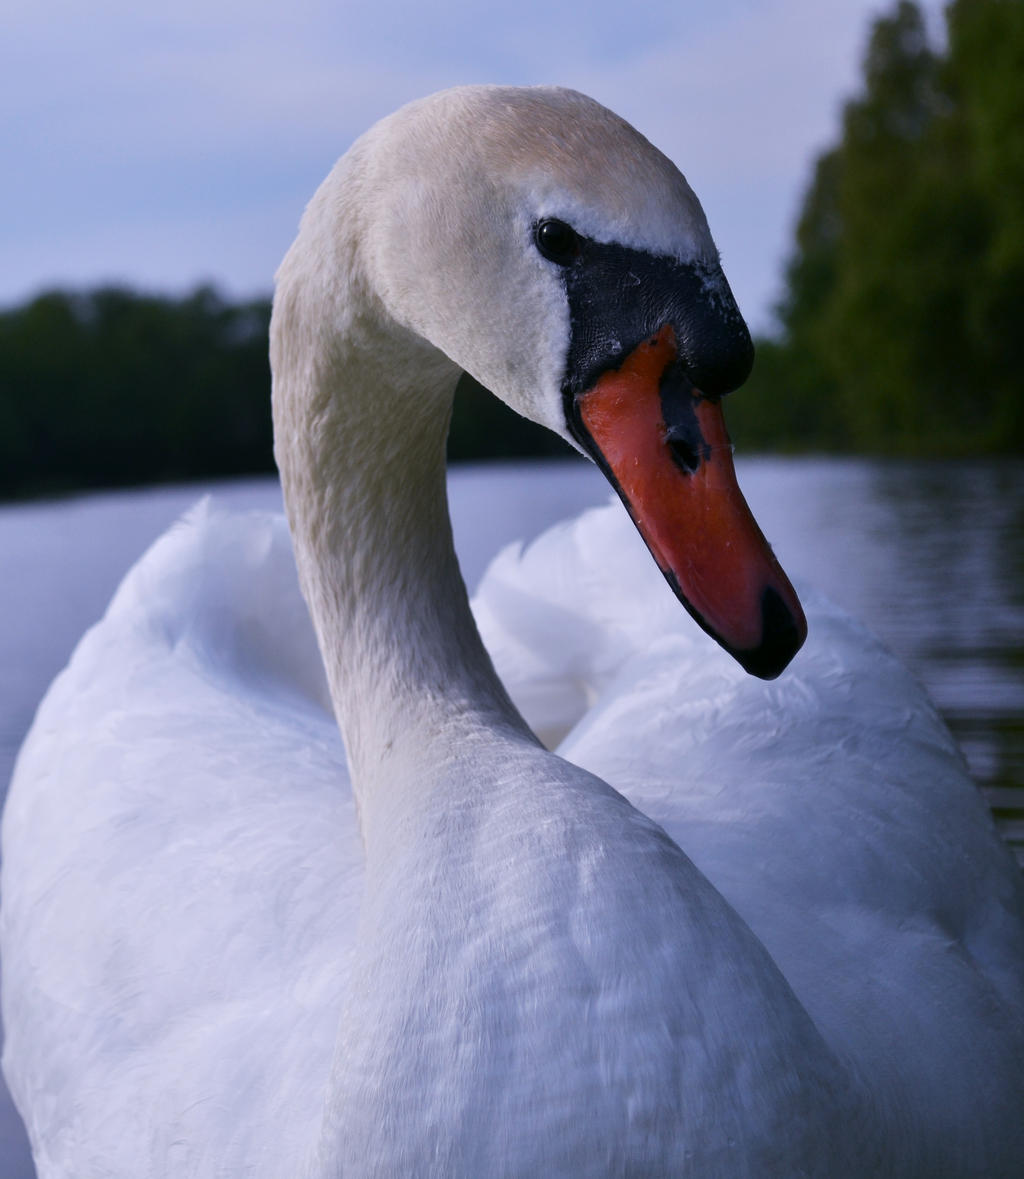 Swan Portrait by TeKNoMaNiaCH